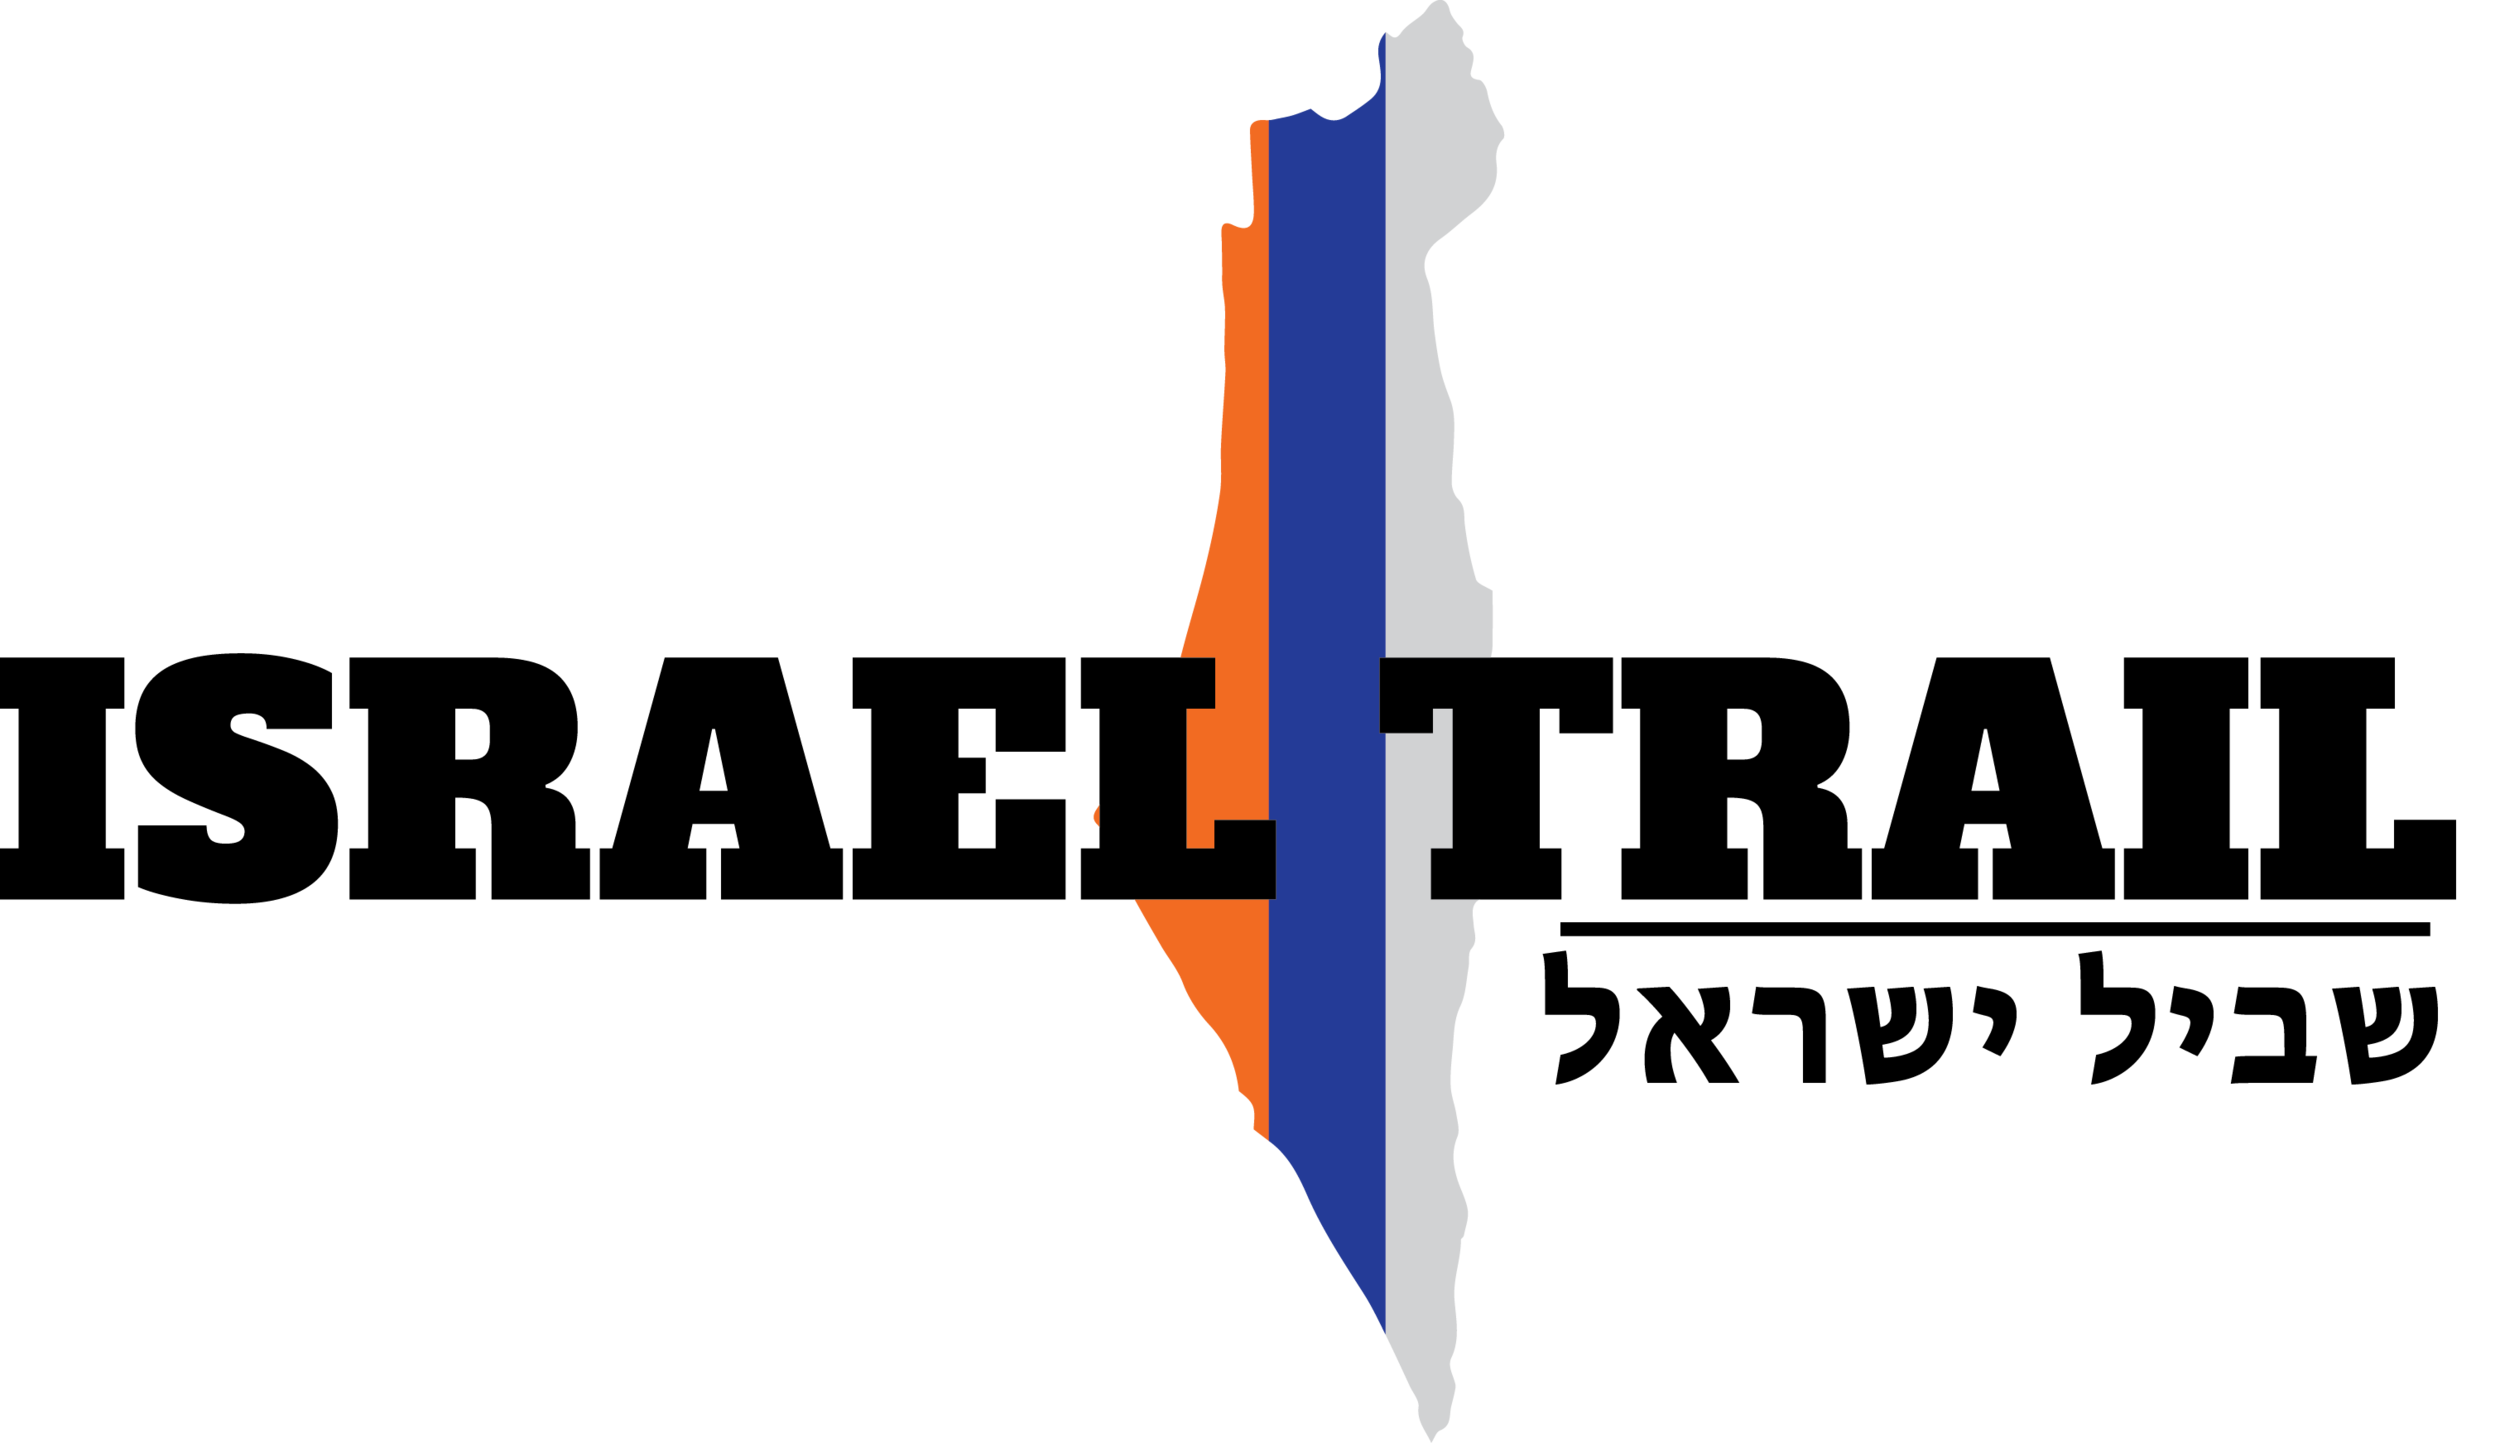 israel_trail_hanna_zeif.png